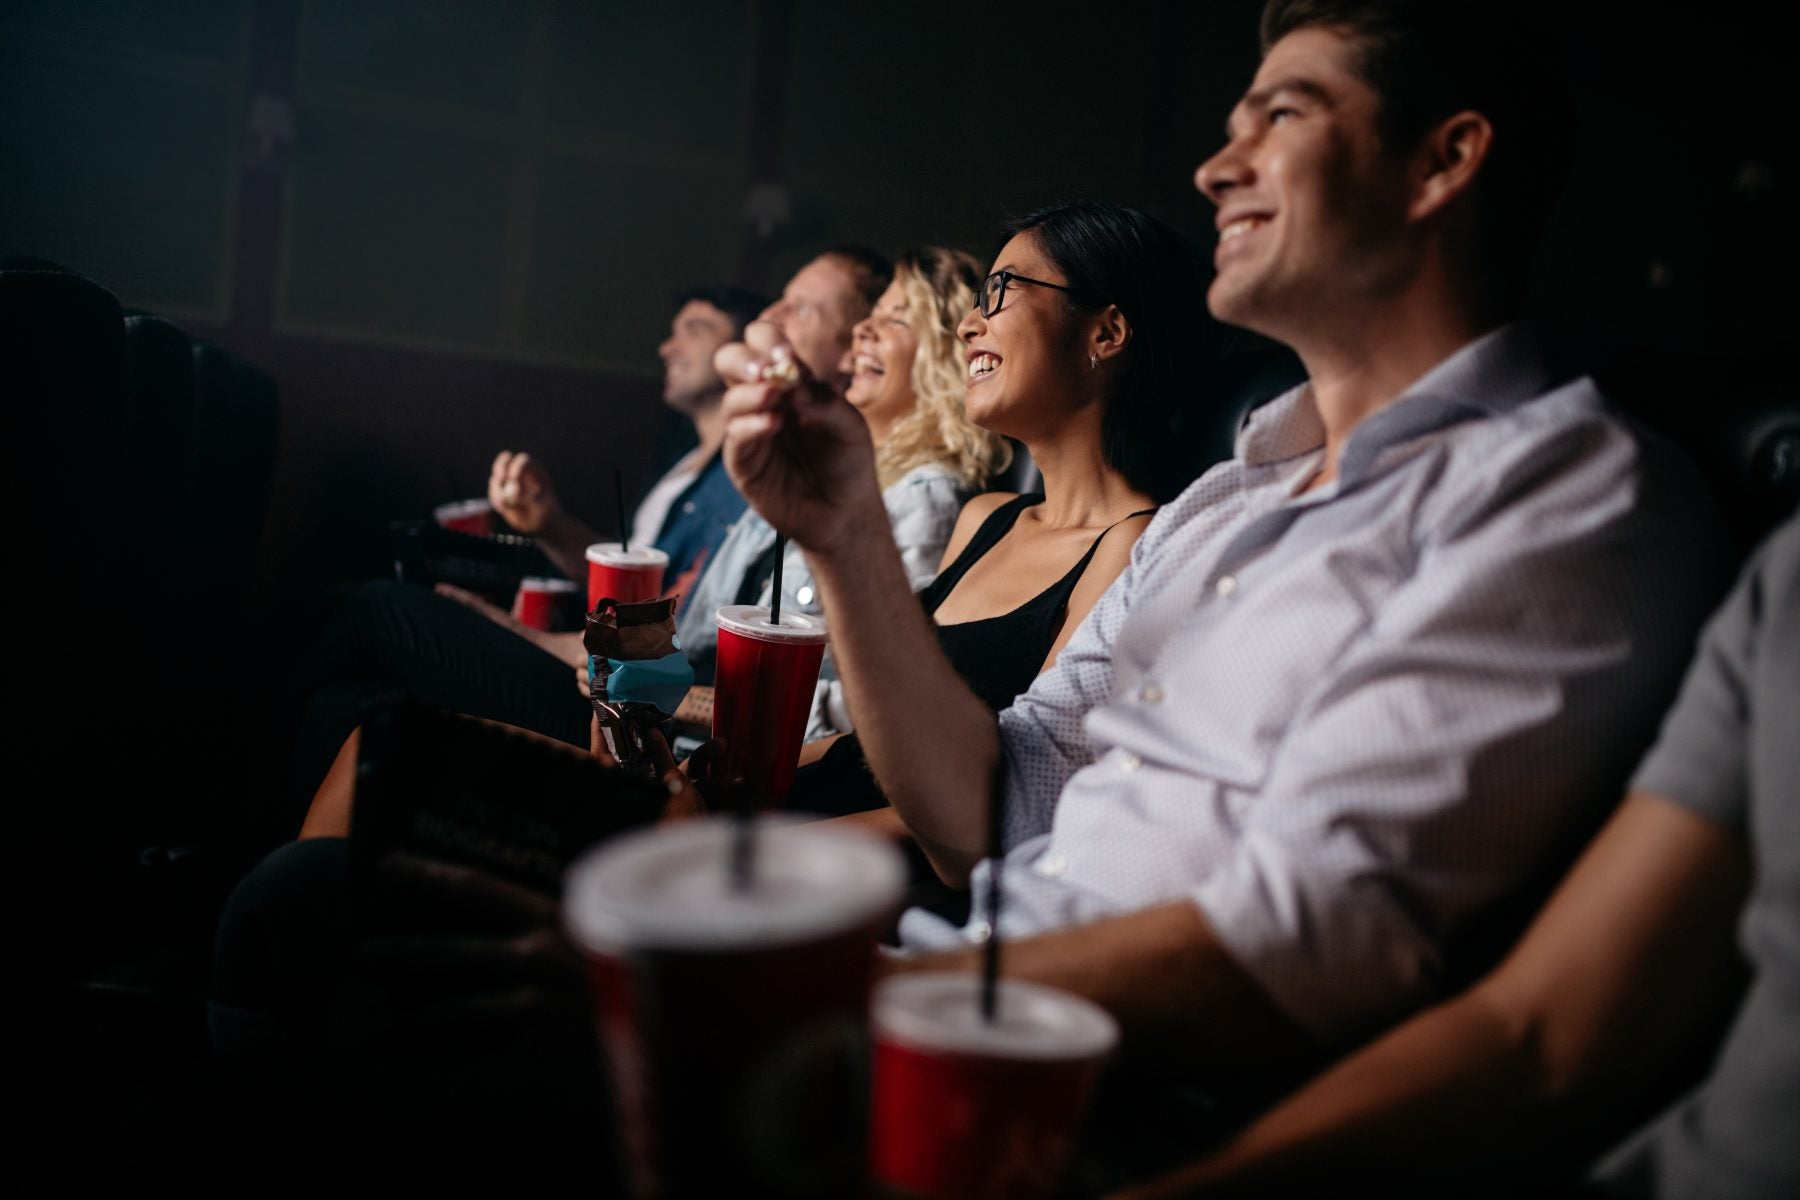 Heading to the Theater? You'll Earn a Bonus With Both Cards